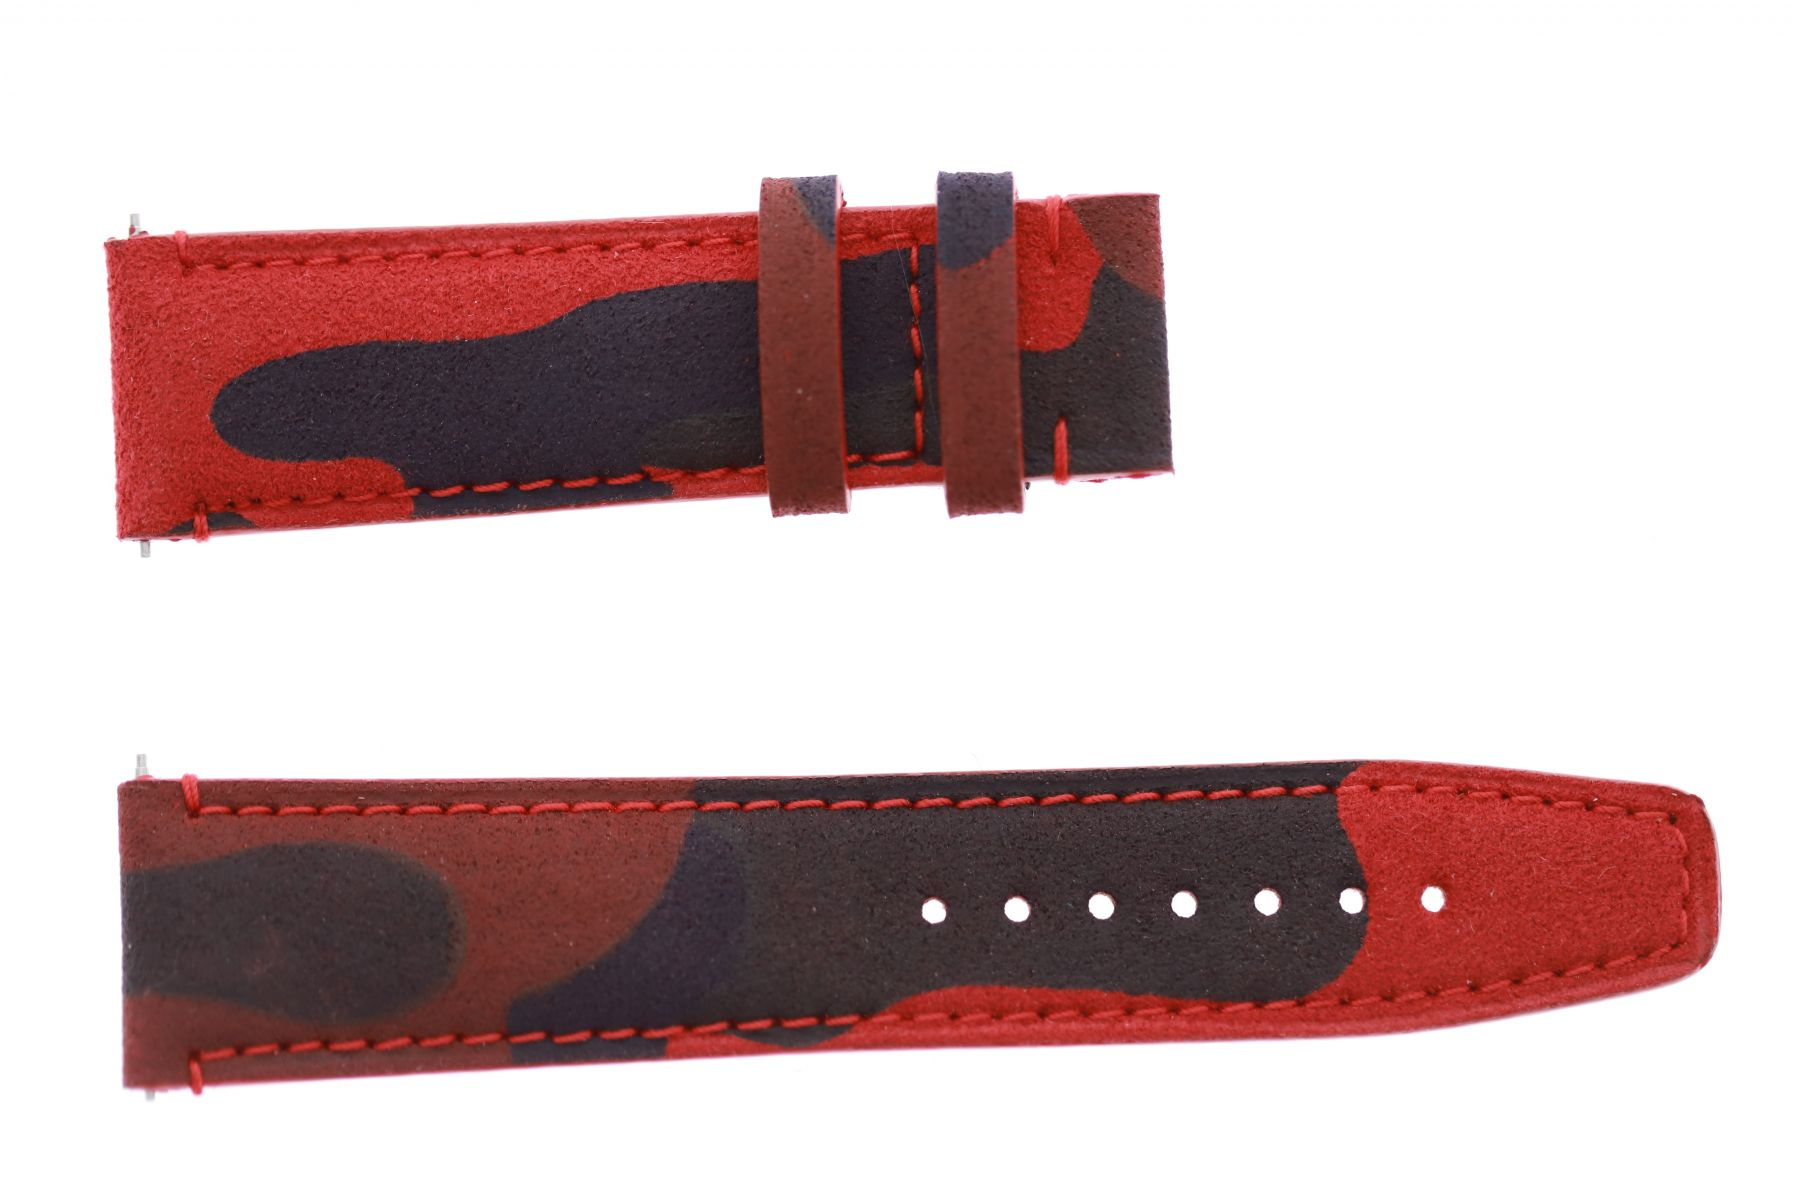 Red Flame Camouflage Alcantara Strap 16mm, 18mm, 19mm, 20mm, 21mm, 22mm, 24mm General style